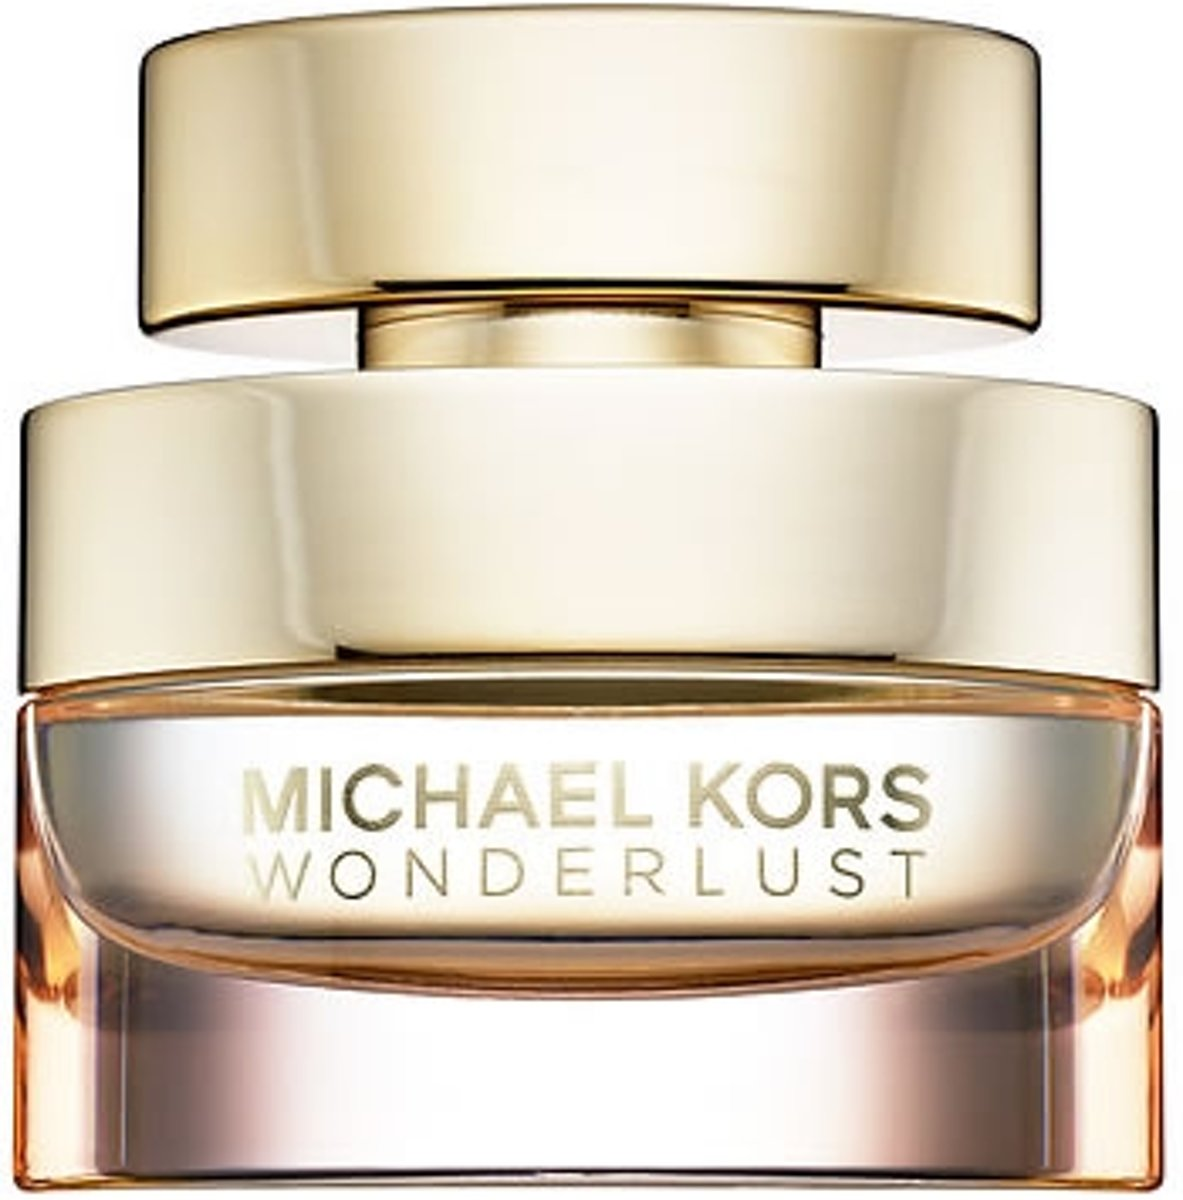 MULTI BUNDEL 2 stuks Michael Kors Wonderlust Eau De Perfume Spray 30ml